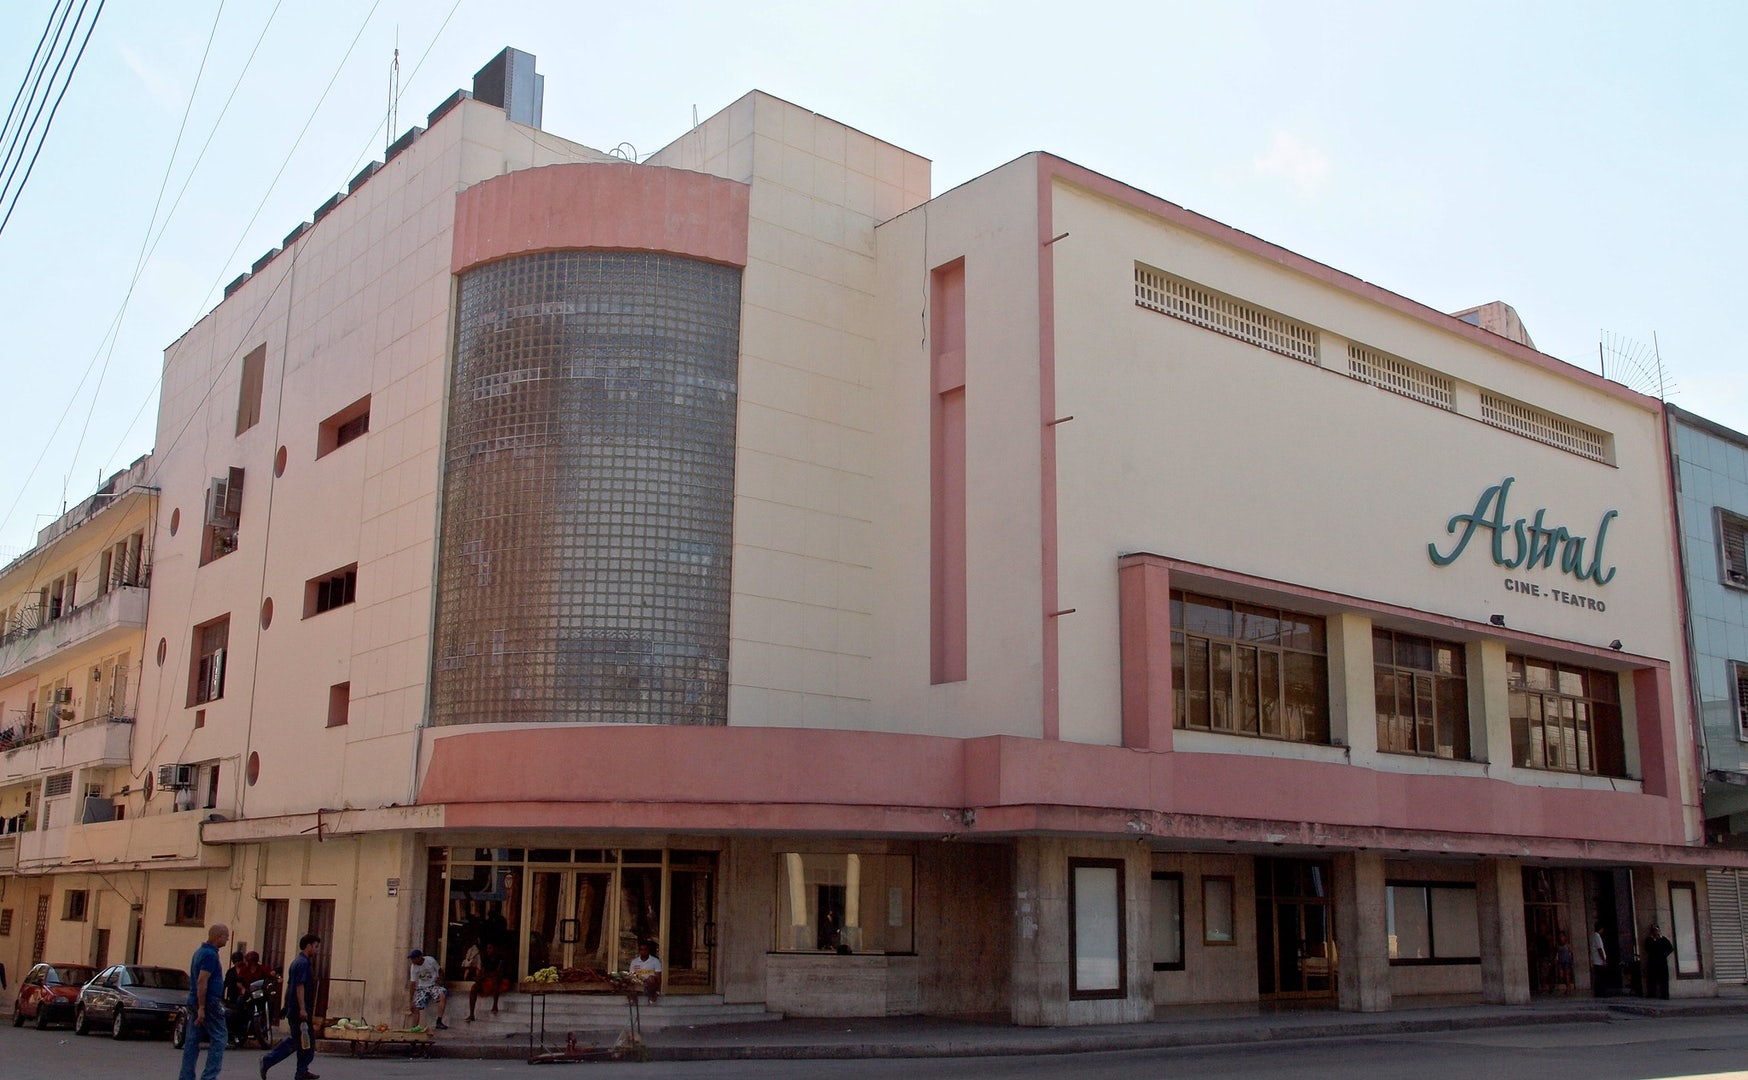 pink art deco building of Cine Astral